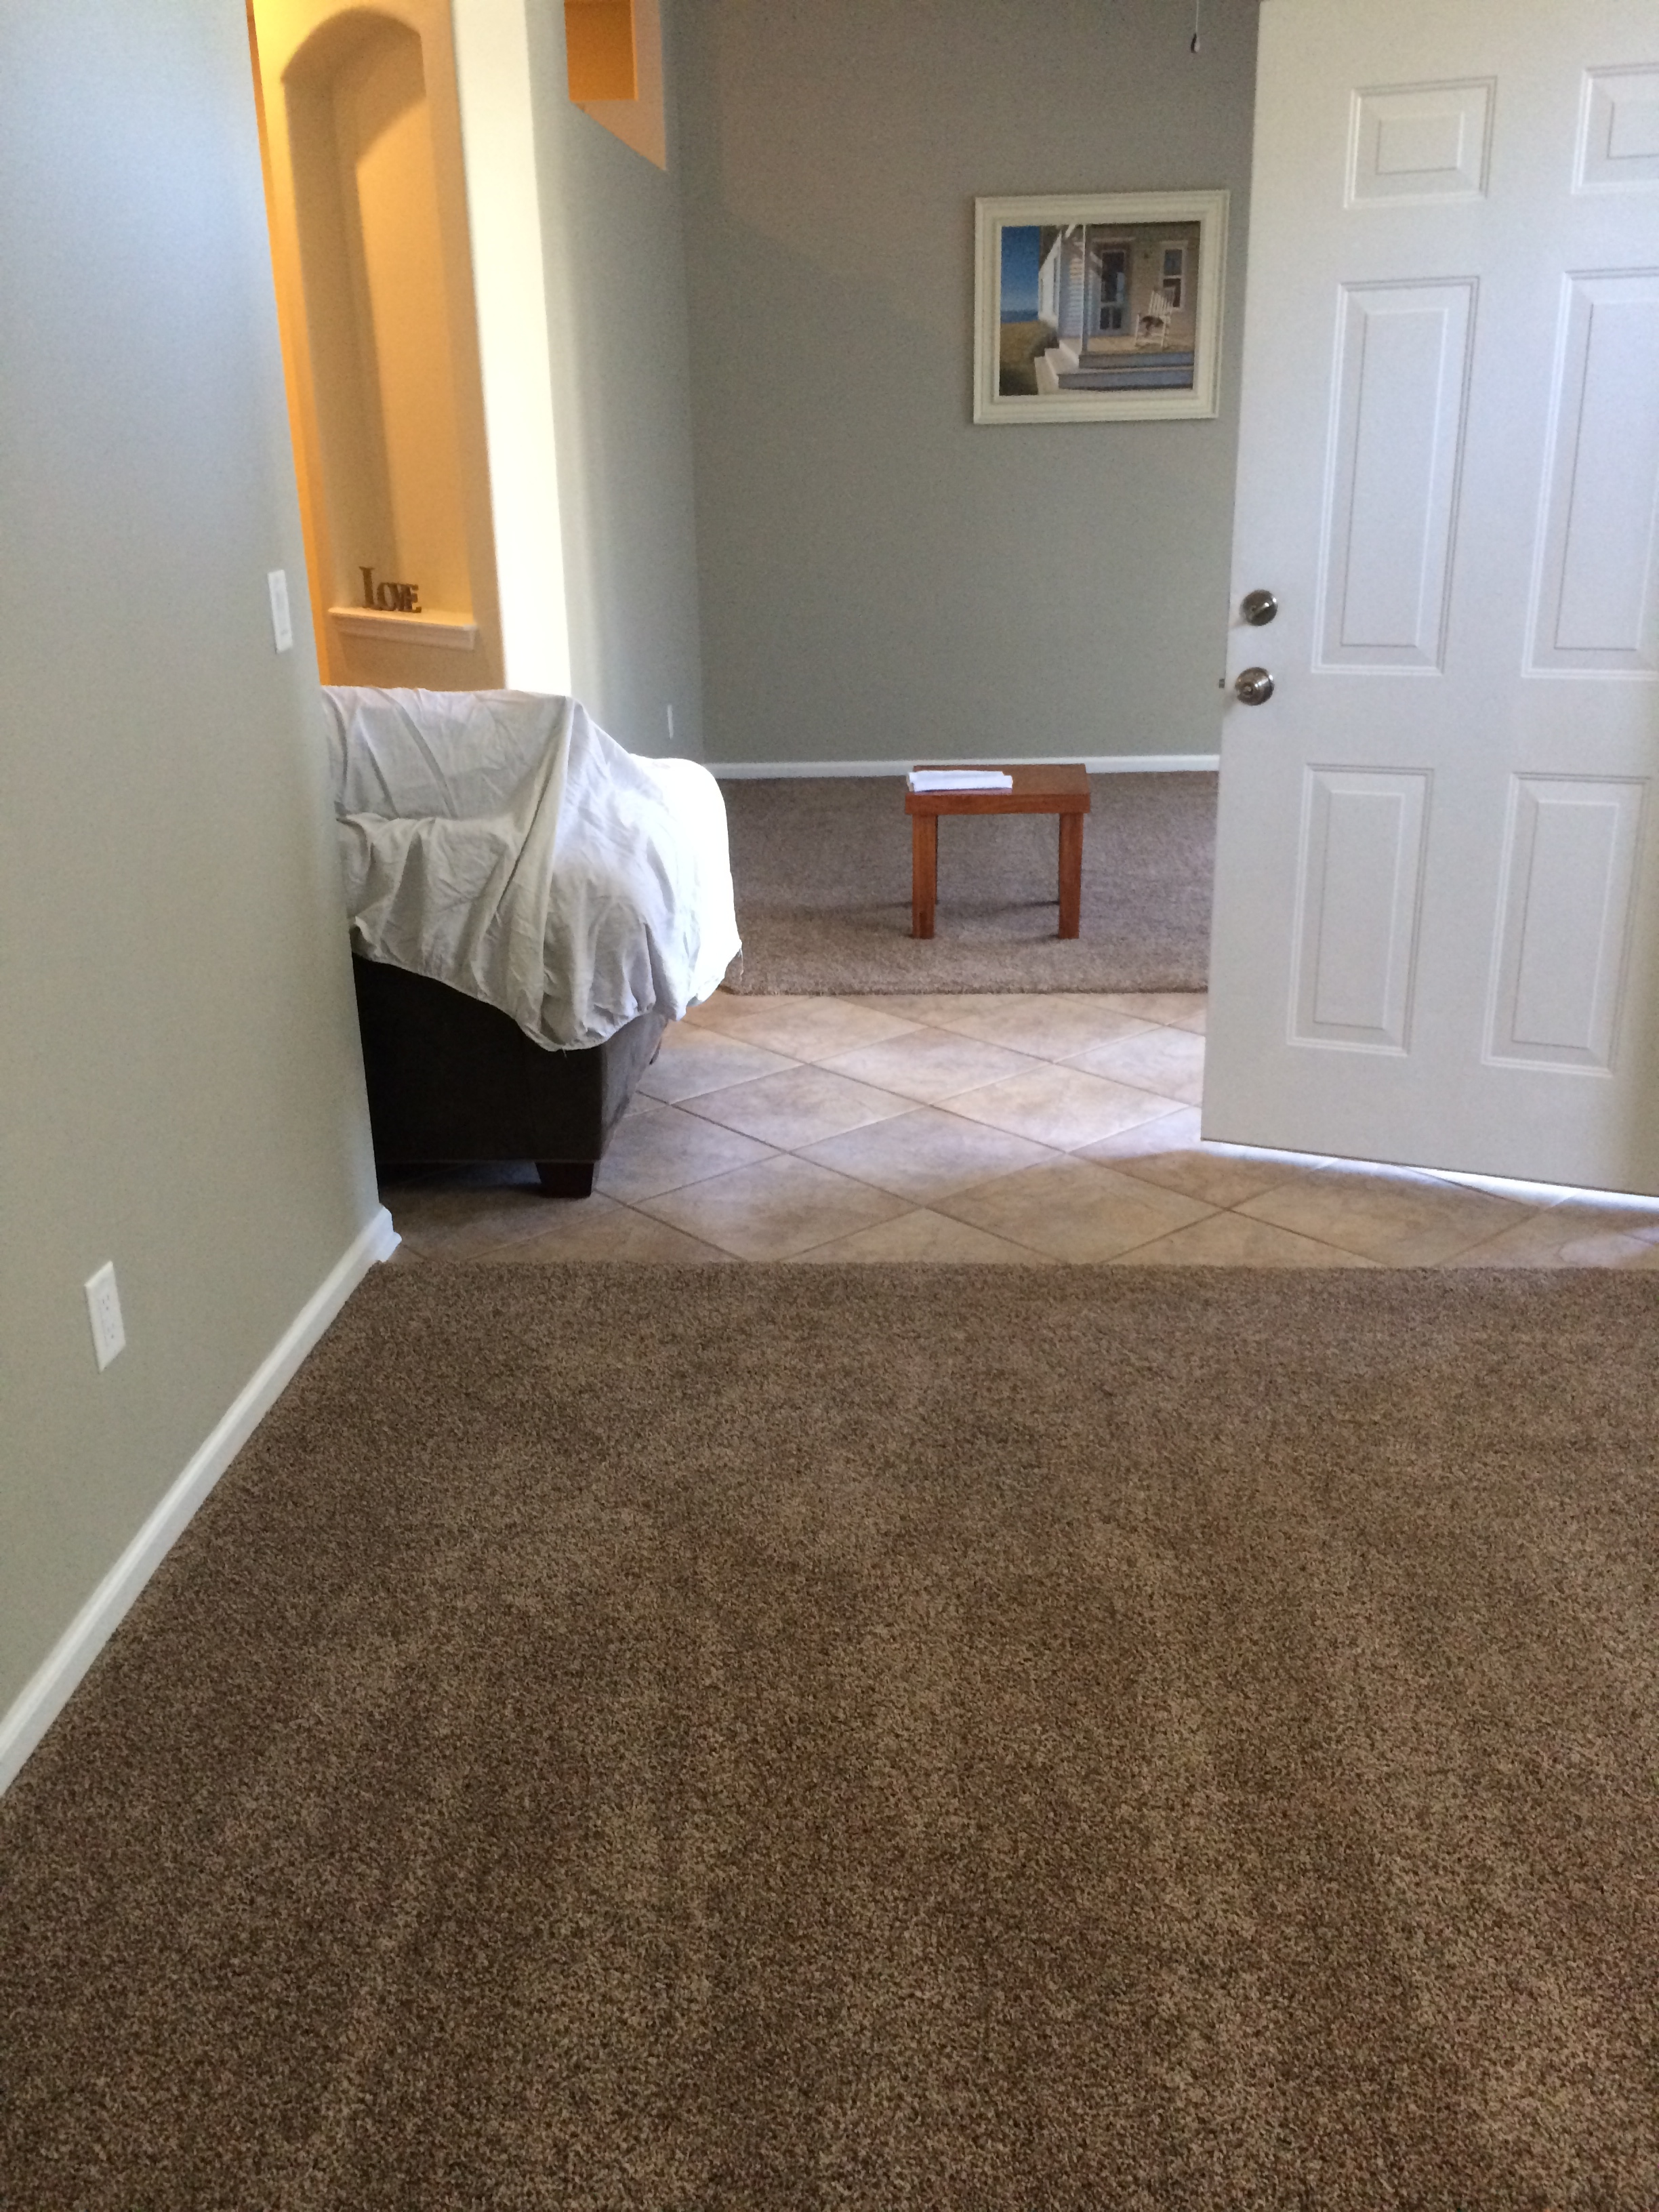 How Happy I Am That We Did Not Go With The Darker Color This Carpet